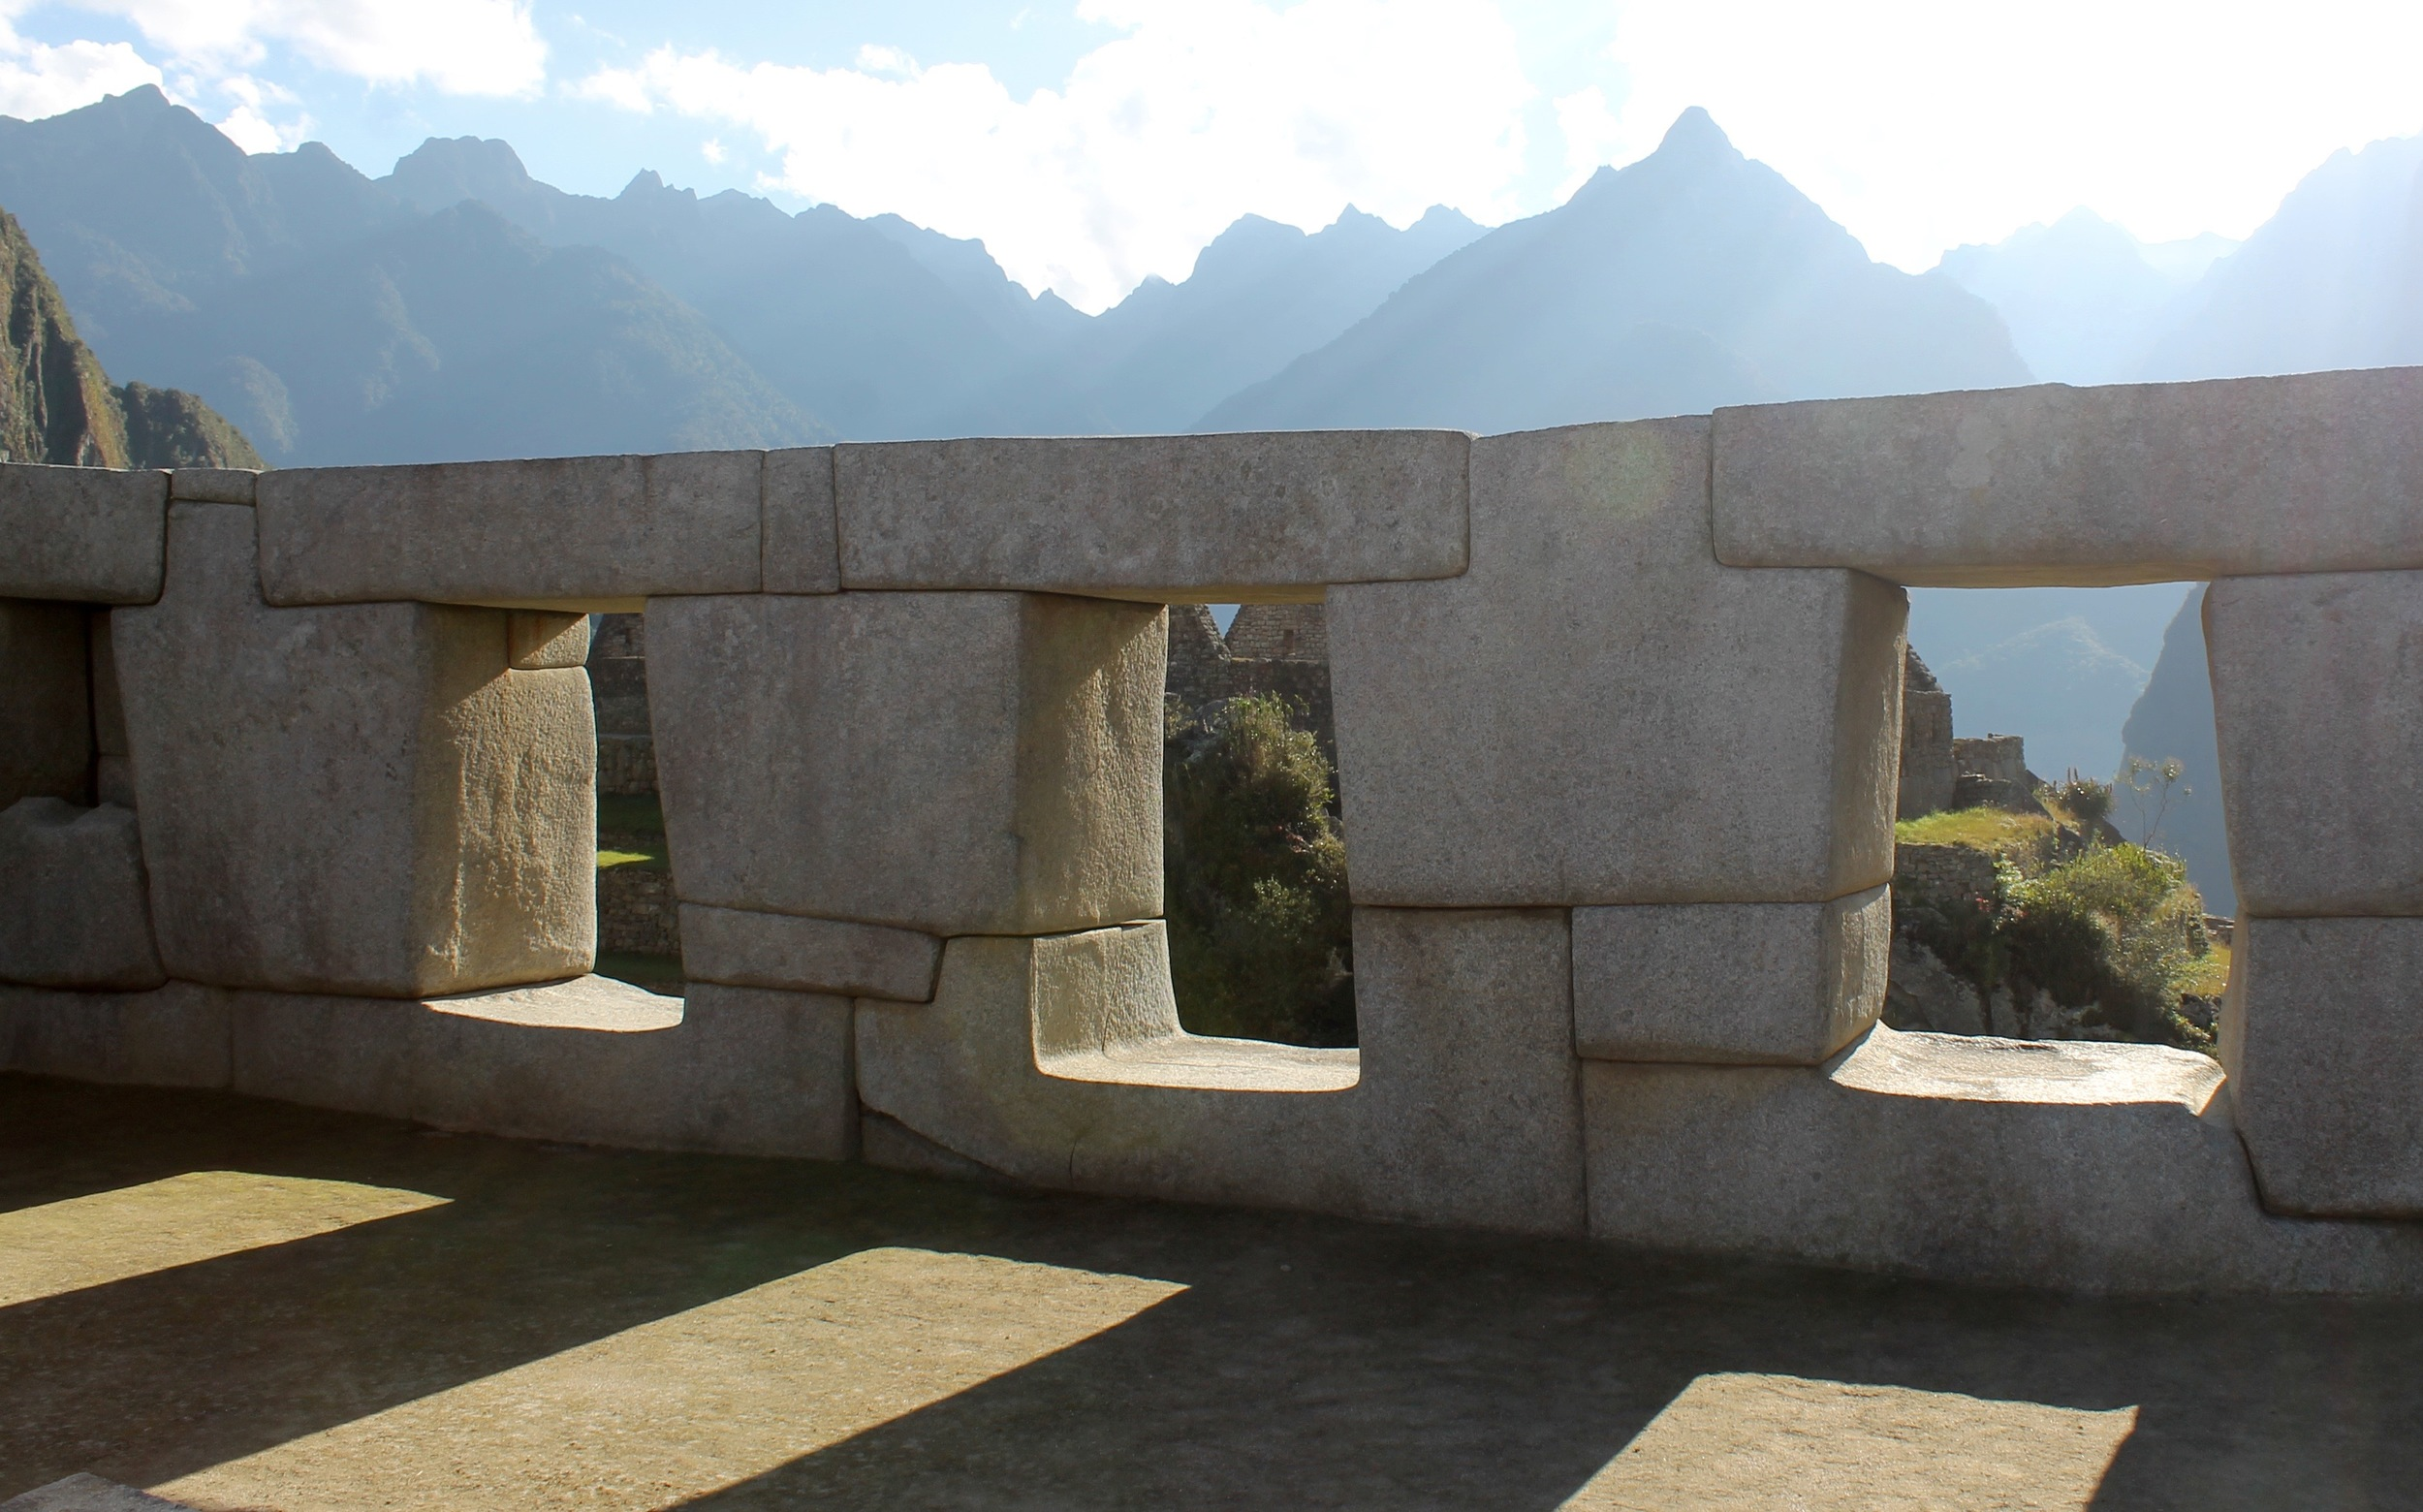 The Temple of the three windows